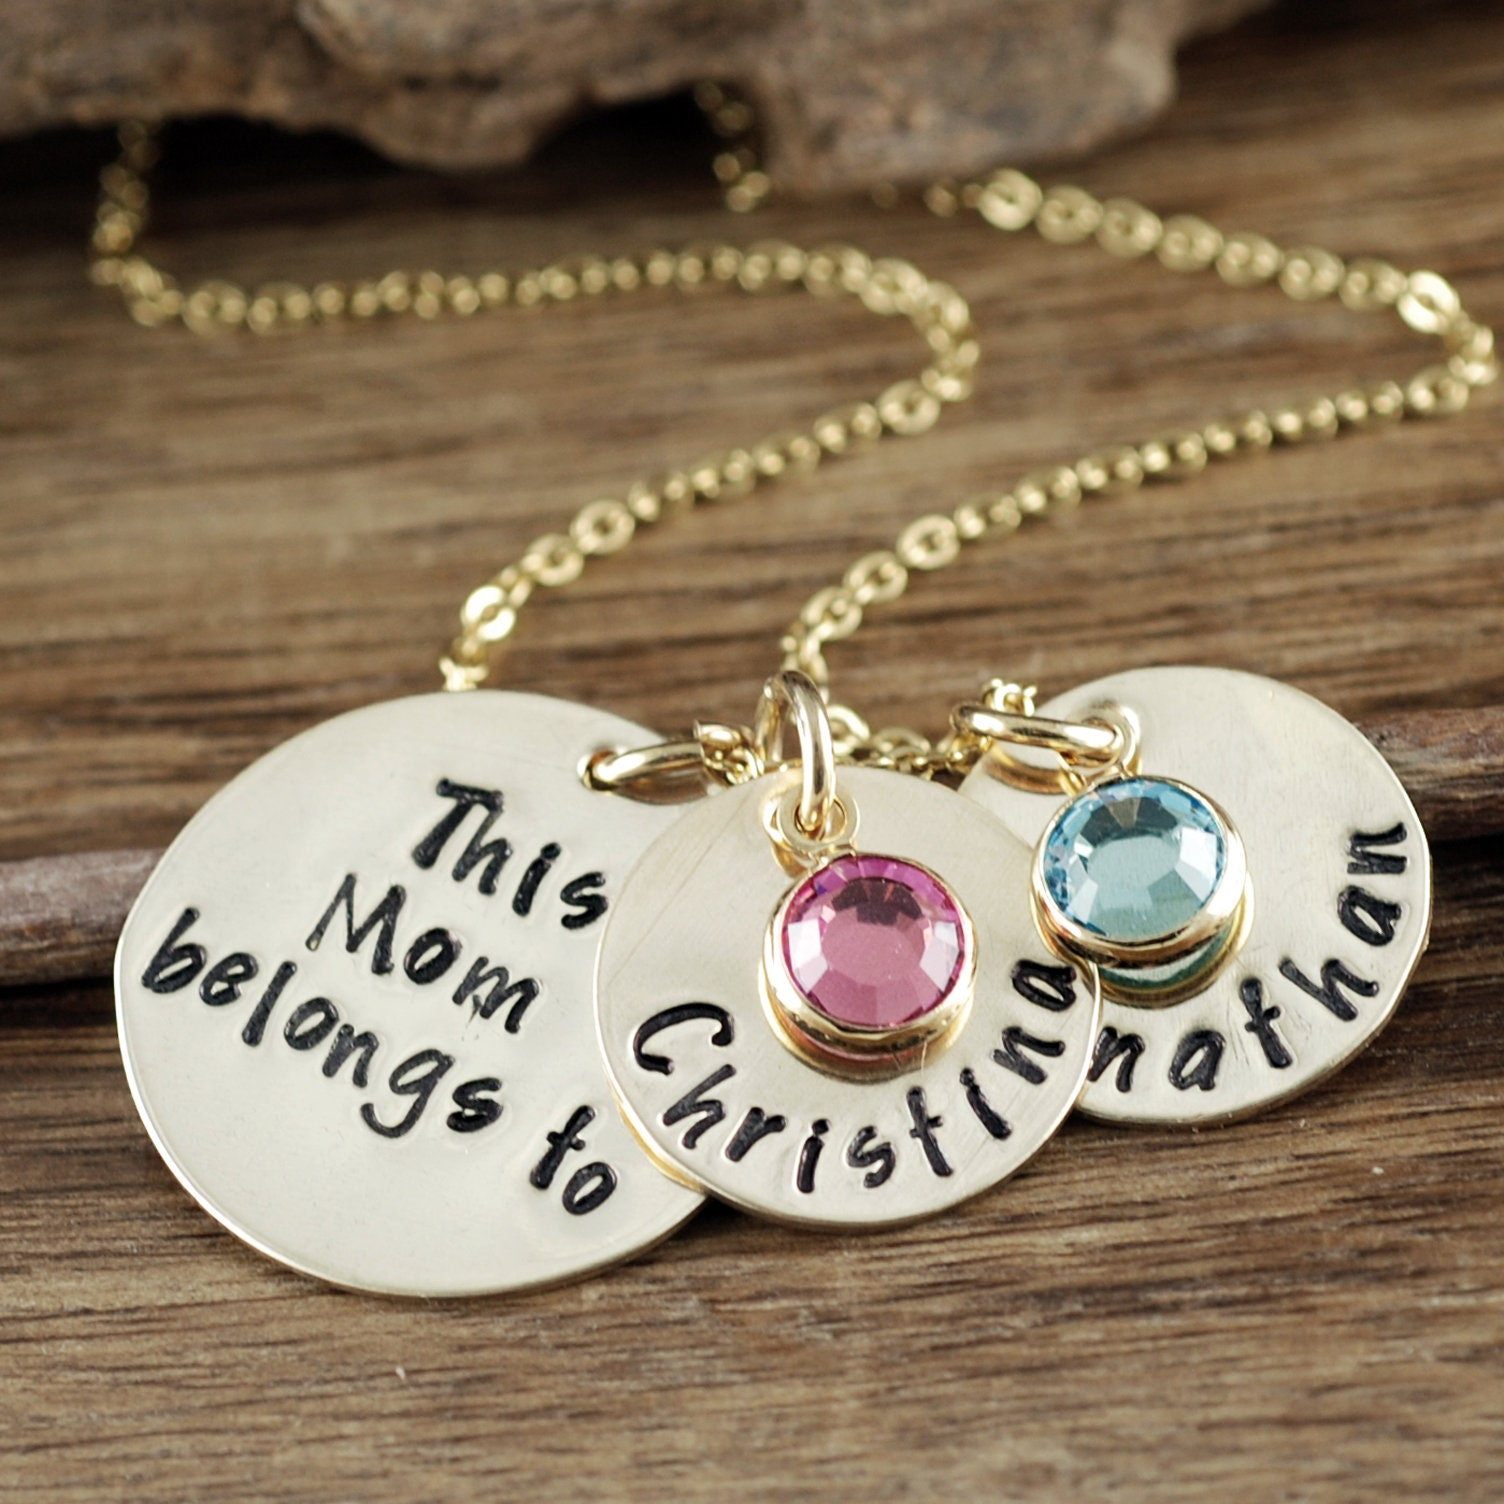 f98530e3cc6a3 Personalized Mom Necklace, Personalized Charm Necklace, Gift for ...